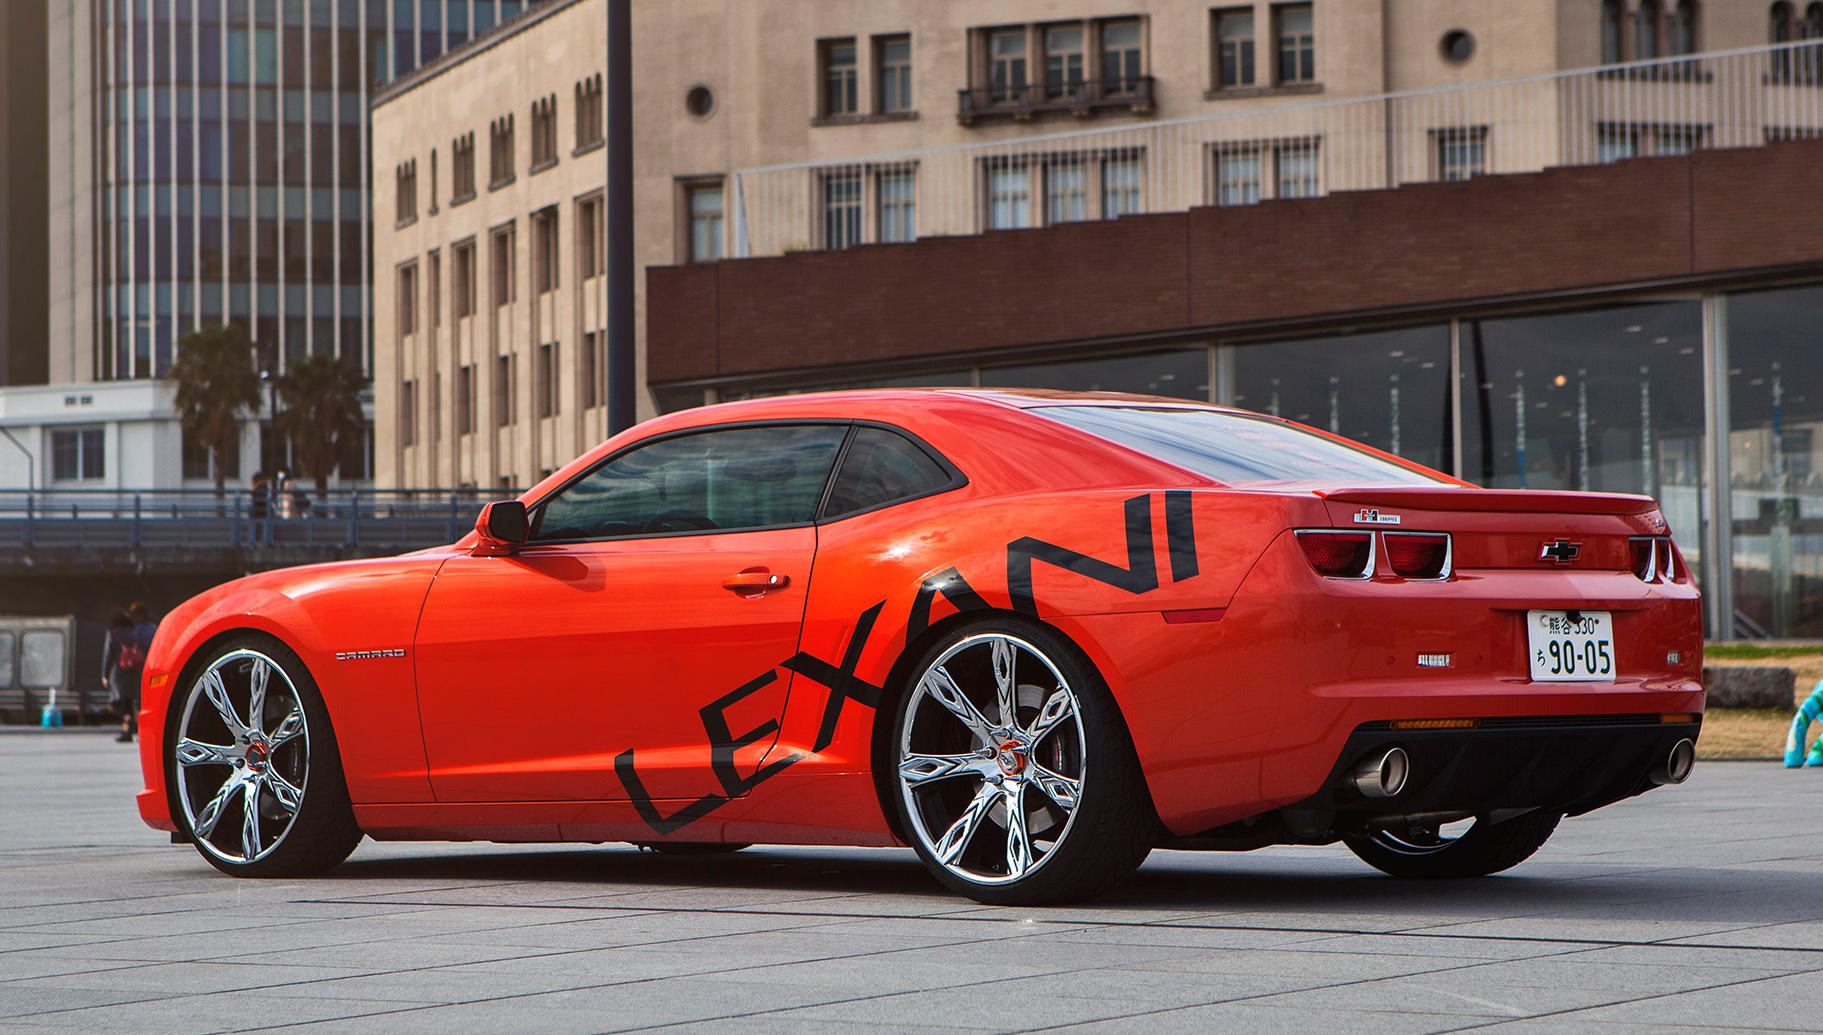 Custom LZ-Deco on the Chevrolet Camaro.